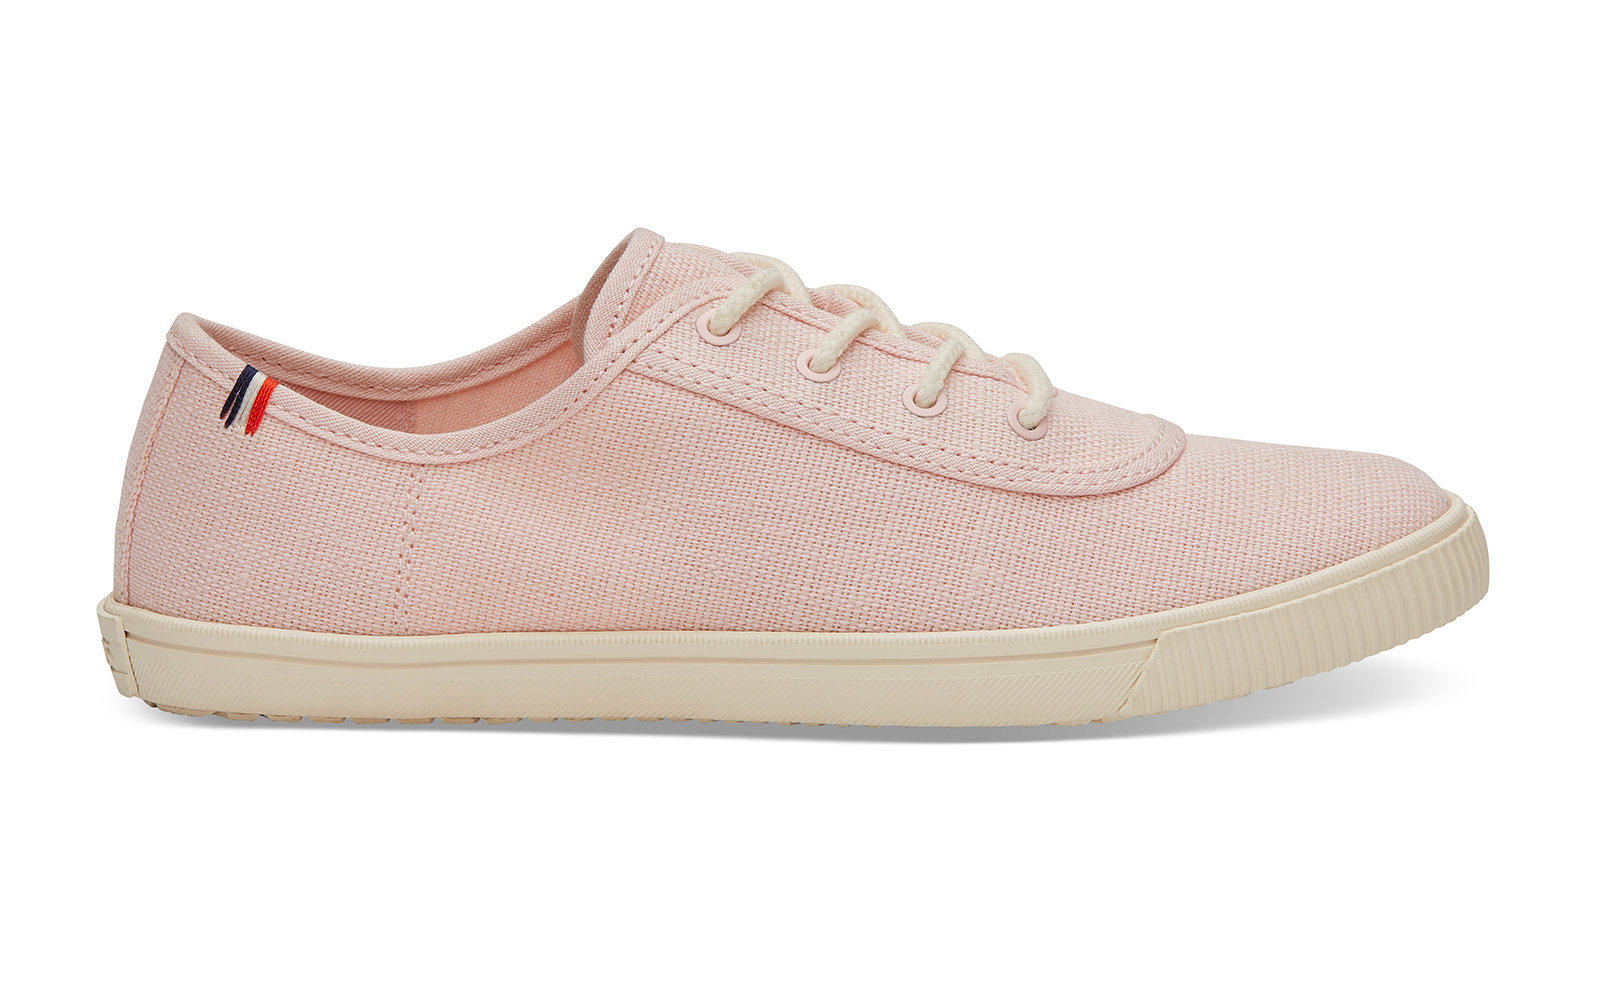 Clare V. Pale Pink Canvas Women's Carmel Sneakers